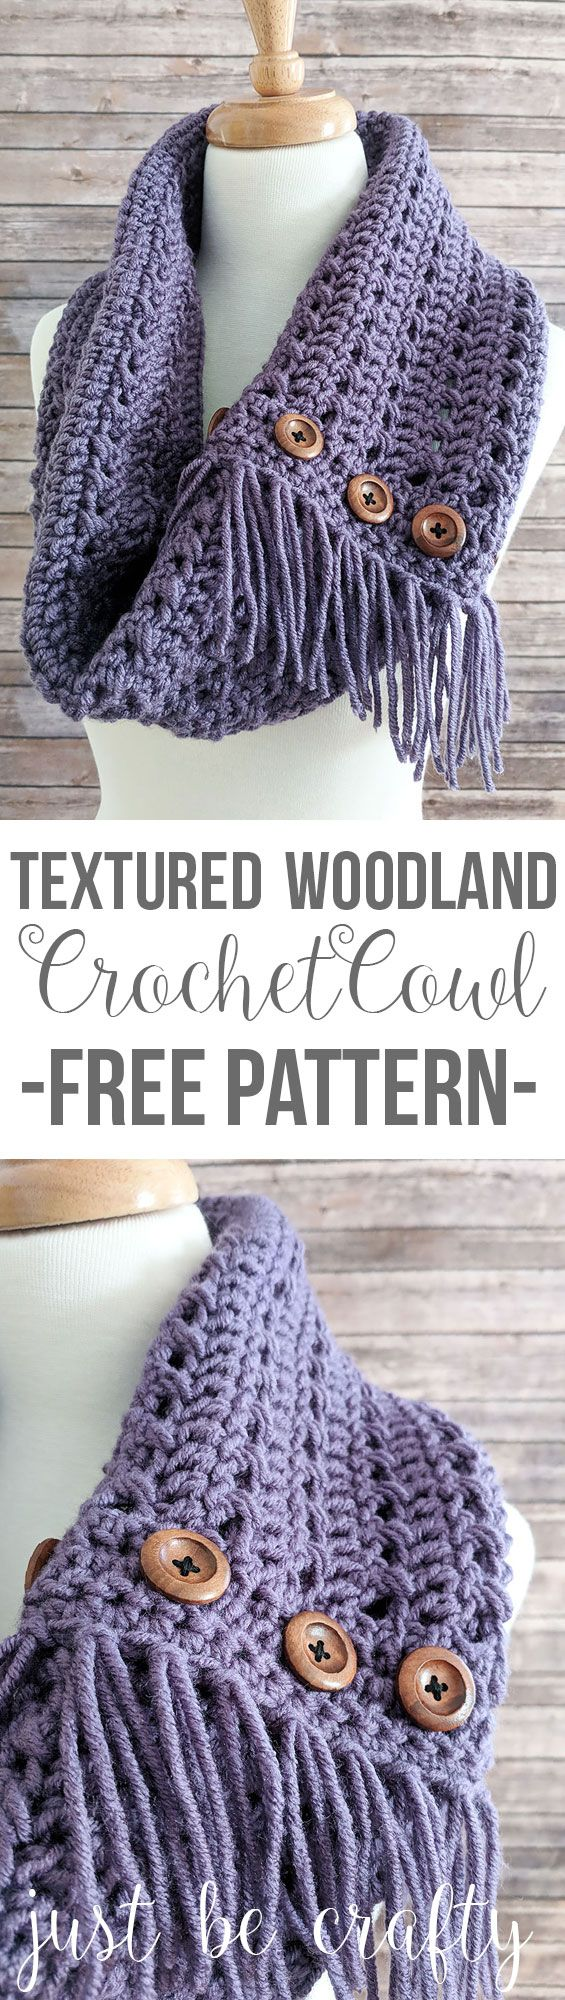 Textured Woodland Crochet Cowl Pattern | Free Pattern by Just Be Crafty